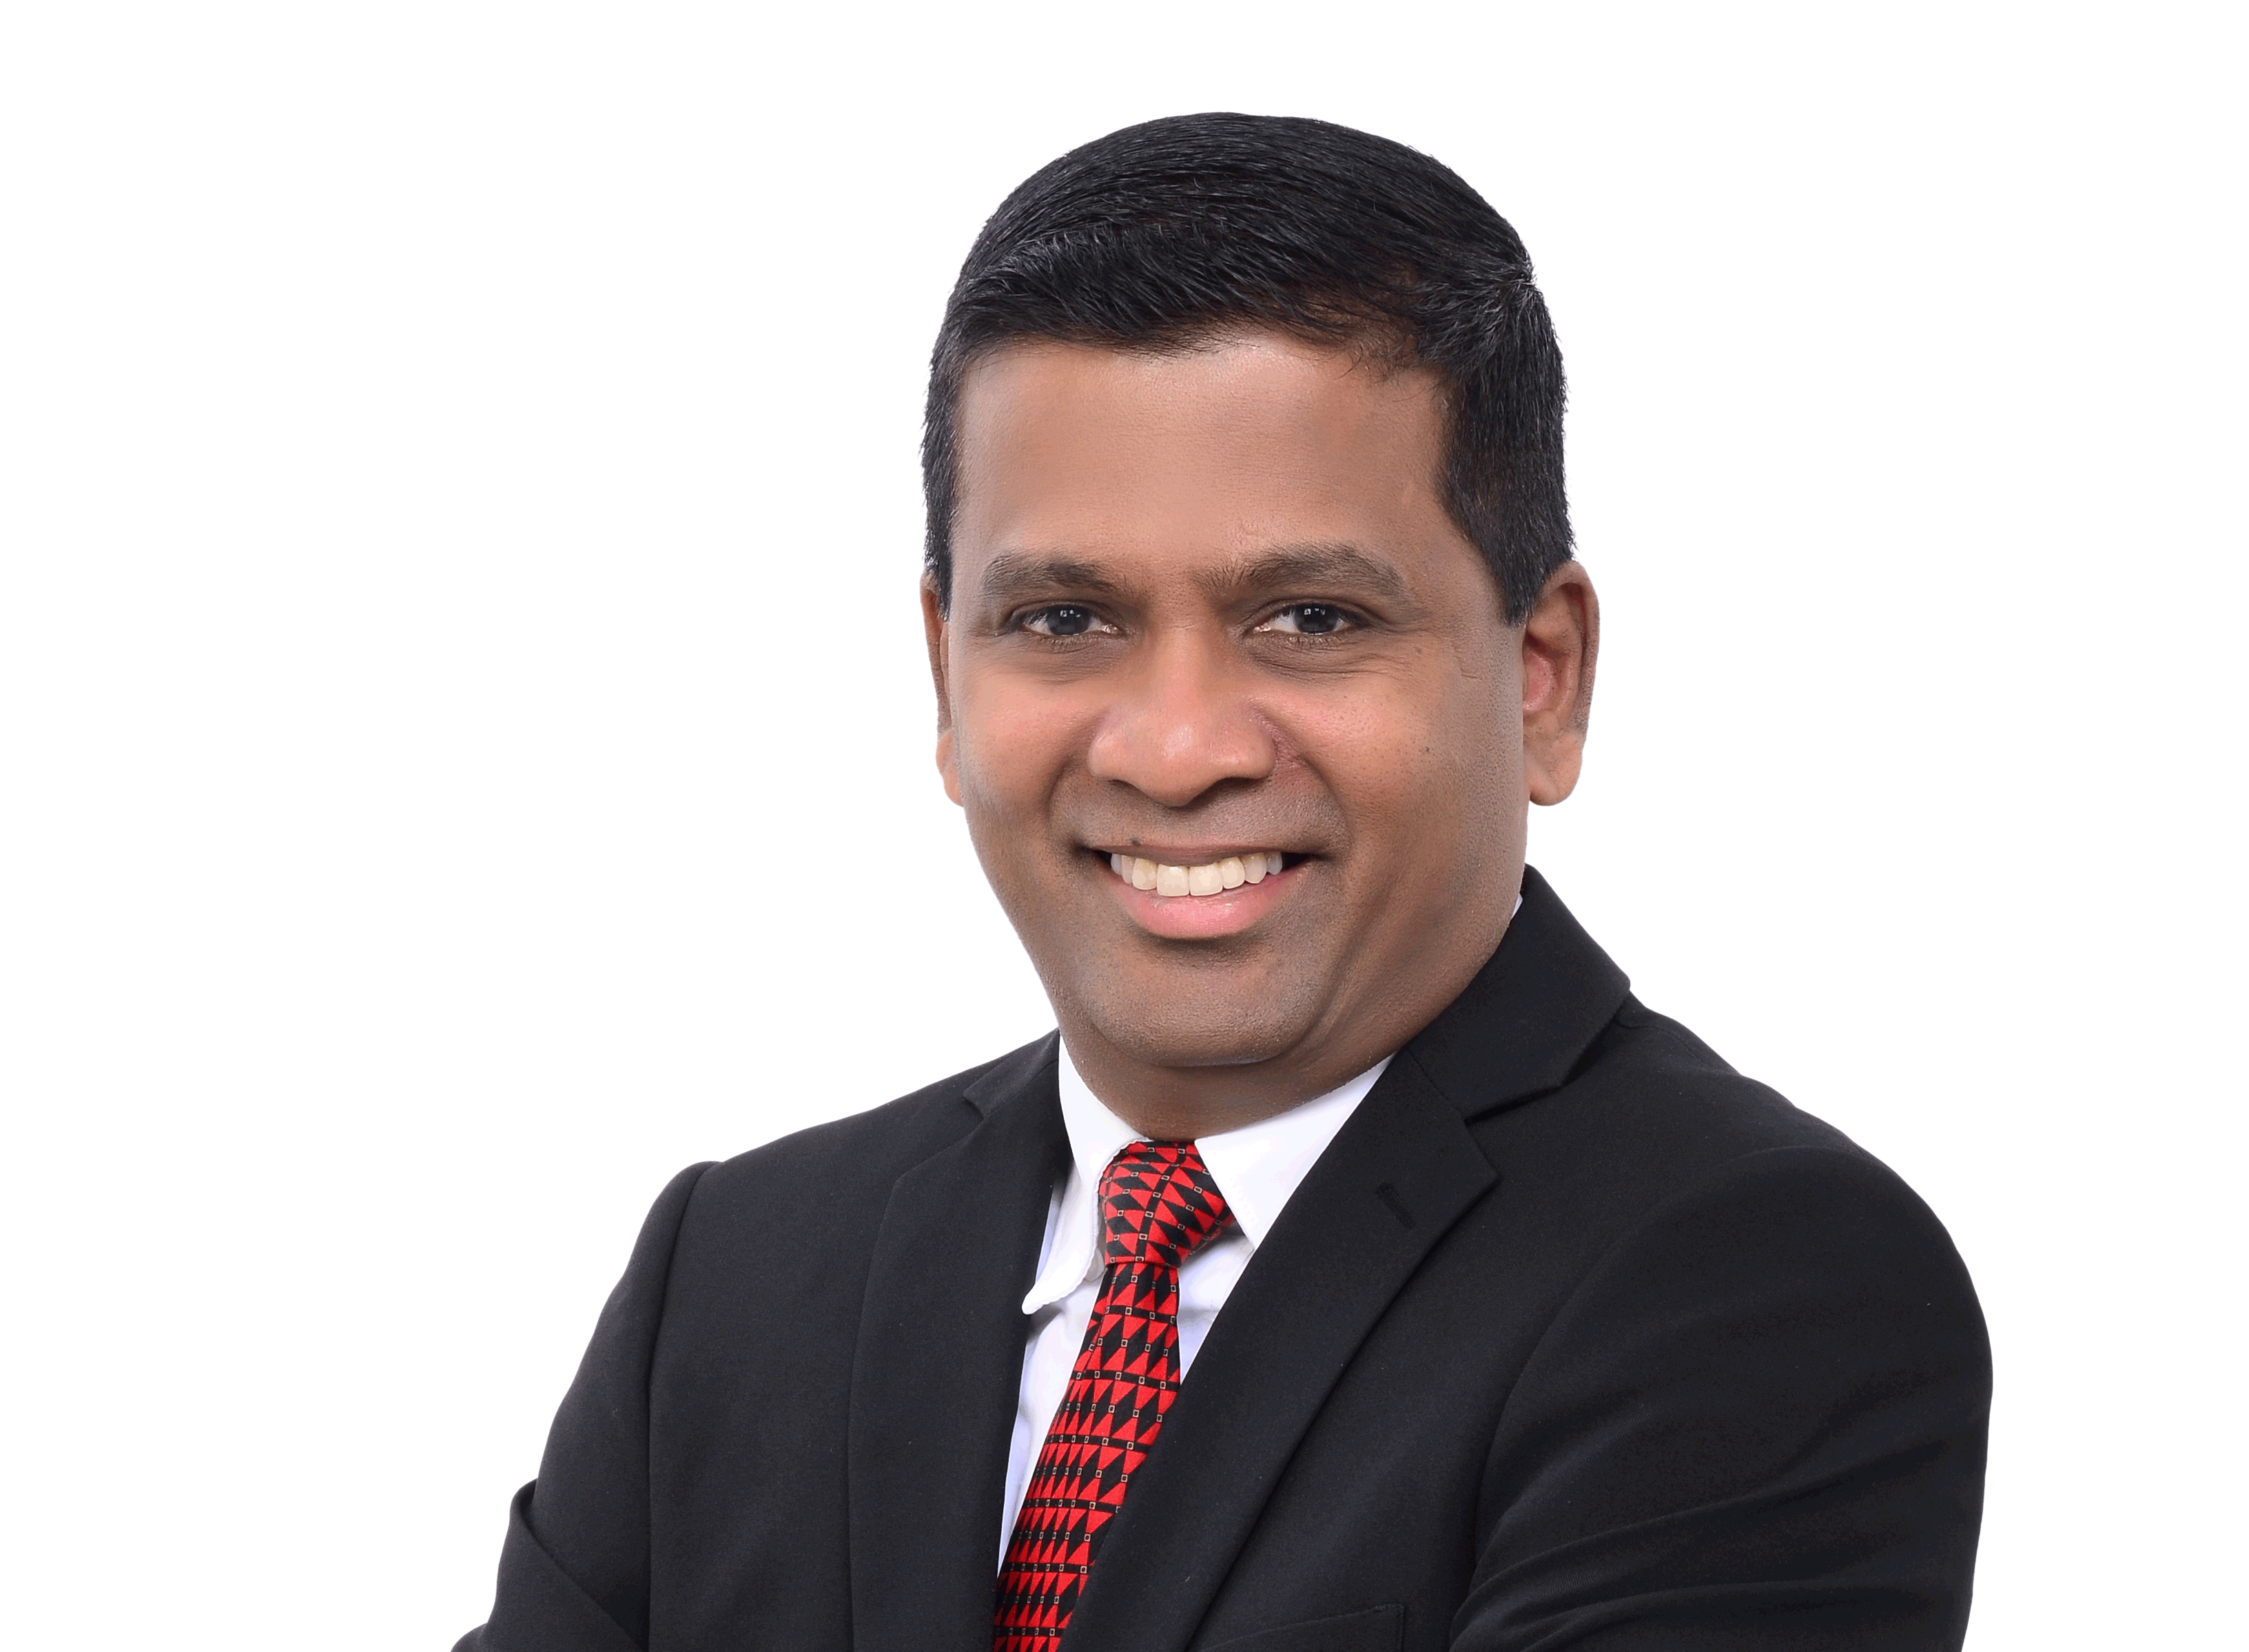 ICCA CEO Senthil Gopinath was recognised at the 2019 PCMA Visionary Awards on 7th May in Washington D.C. when he was named Business Events Strategist of the Year.